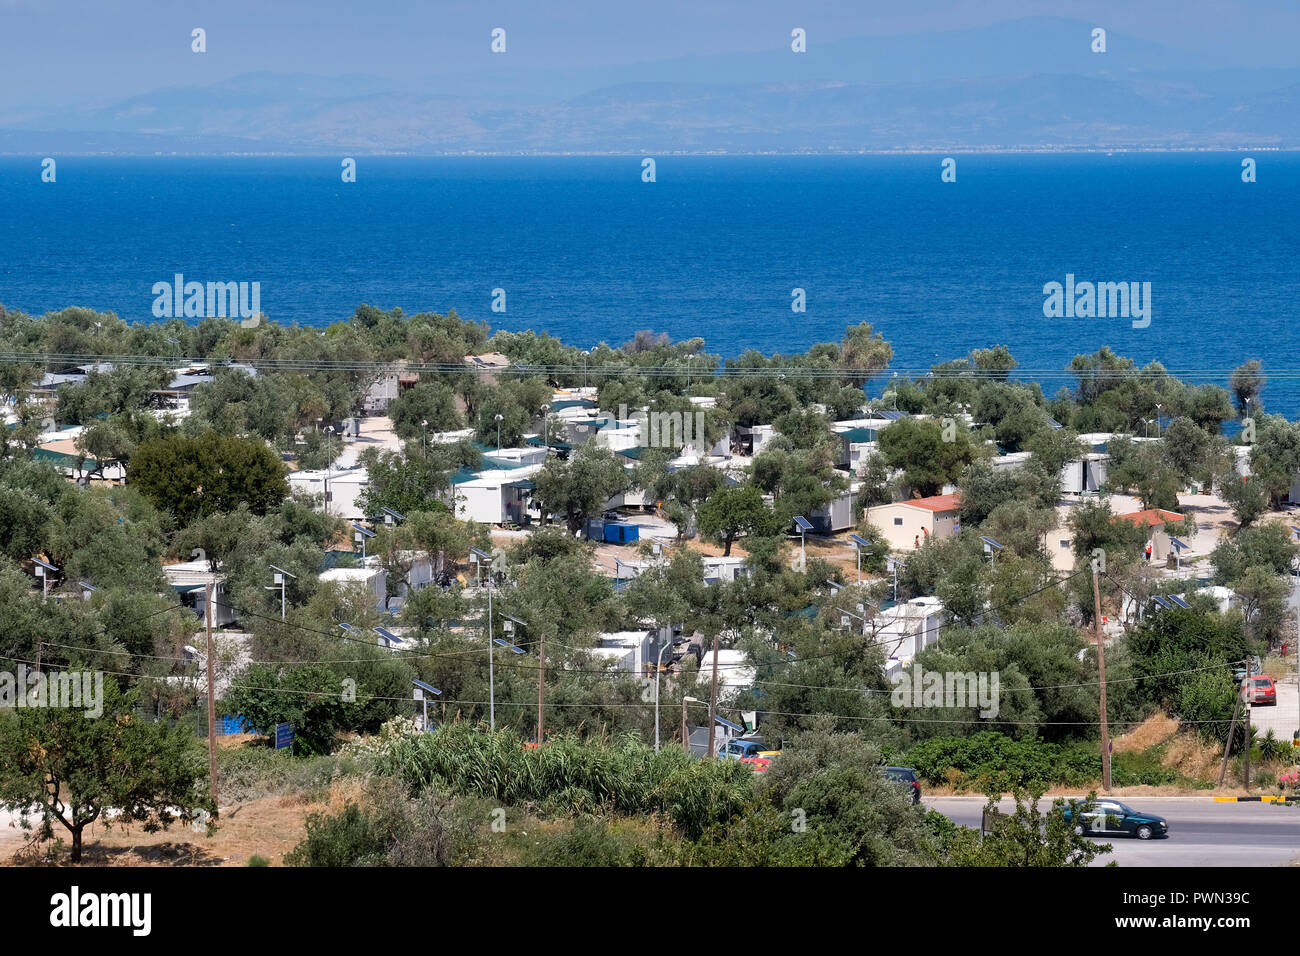 KARA TEPE Hospitality Center for Refugees and Migrants, local refugee camp near the island capital of Mytilene, on the island of Lesbos, Greece. In the background the coast of Turkey. May 2018 - KARA TEPE Hospitality Center for Refugees and Migrants, lokales Flüchtlingscamp nahe der Inselhauptstadt Mytilini, auf der Insel Lesbos, Griechenland. Im Hintergrund die Küste der Türkei. Mai 2018 - Stock Image